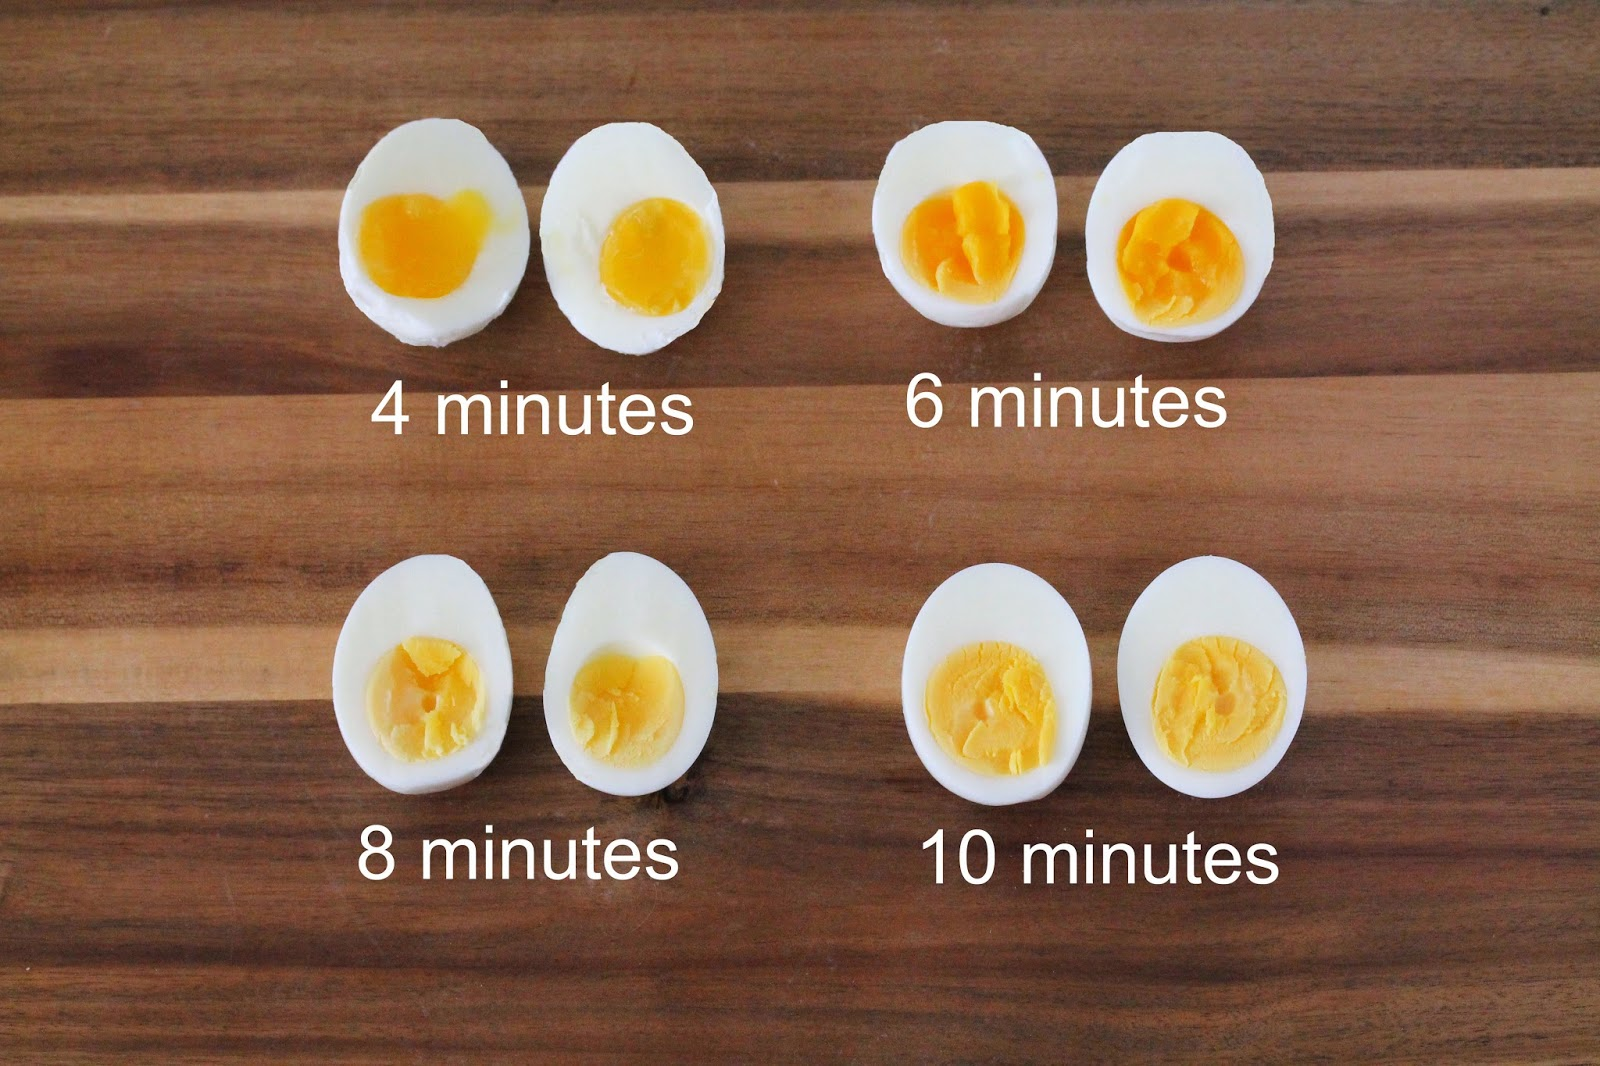 How to boil eggs 10